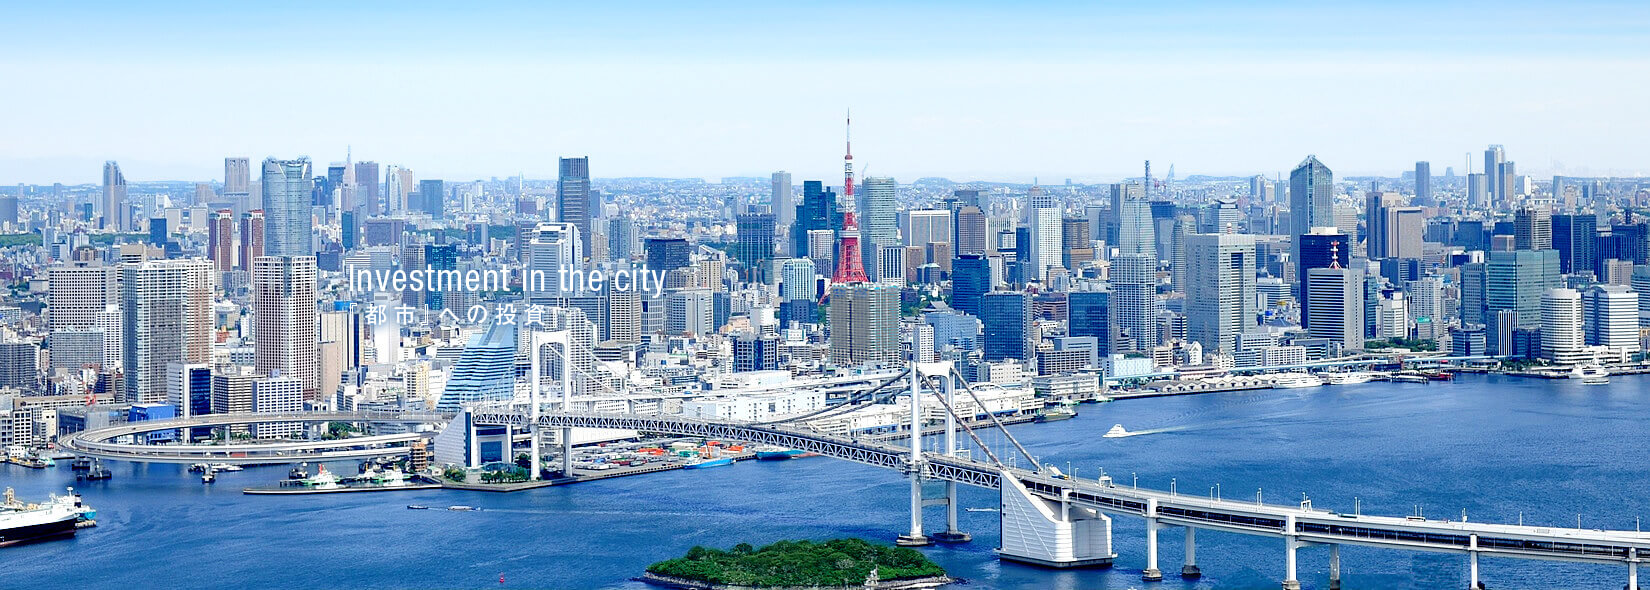 Investment in the city 「都市」への投資